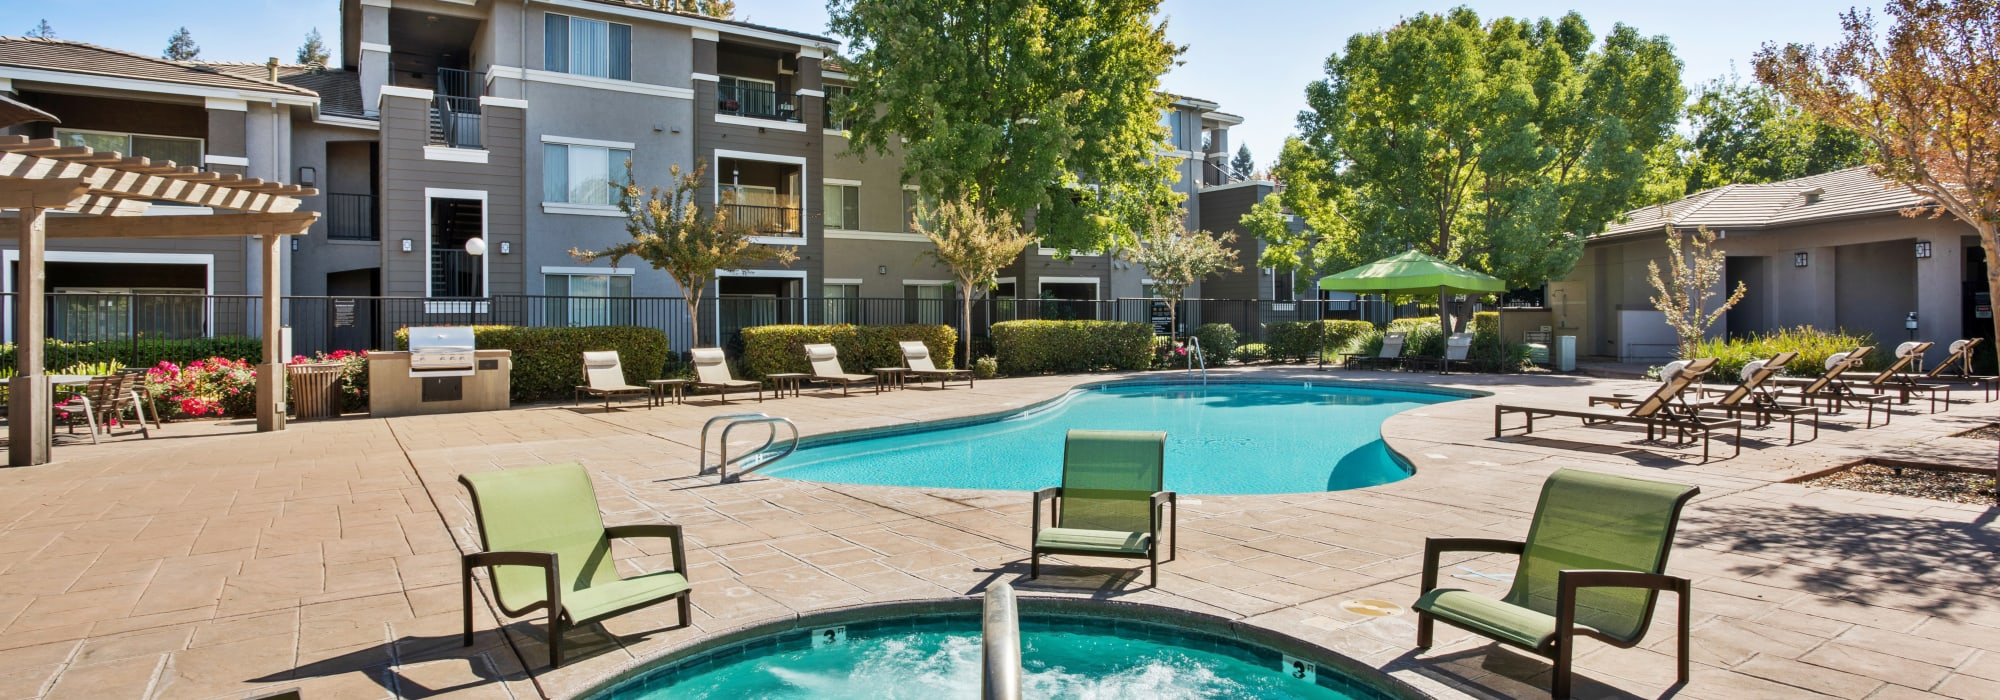 Amenities at Miramonte and Trovas in Sacramento, California